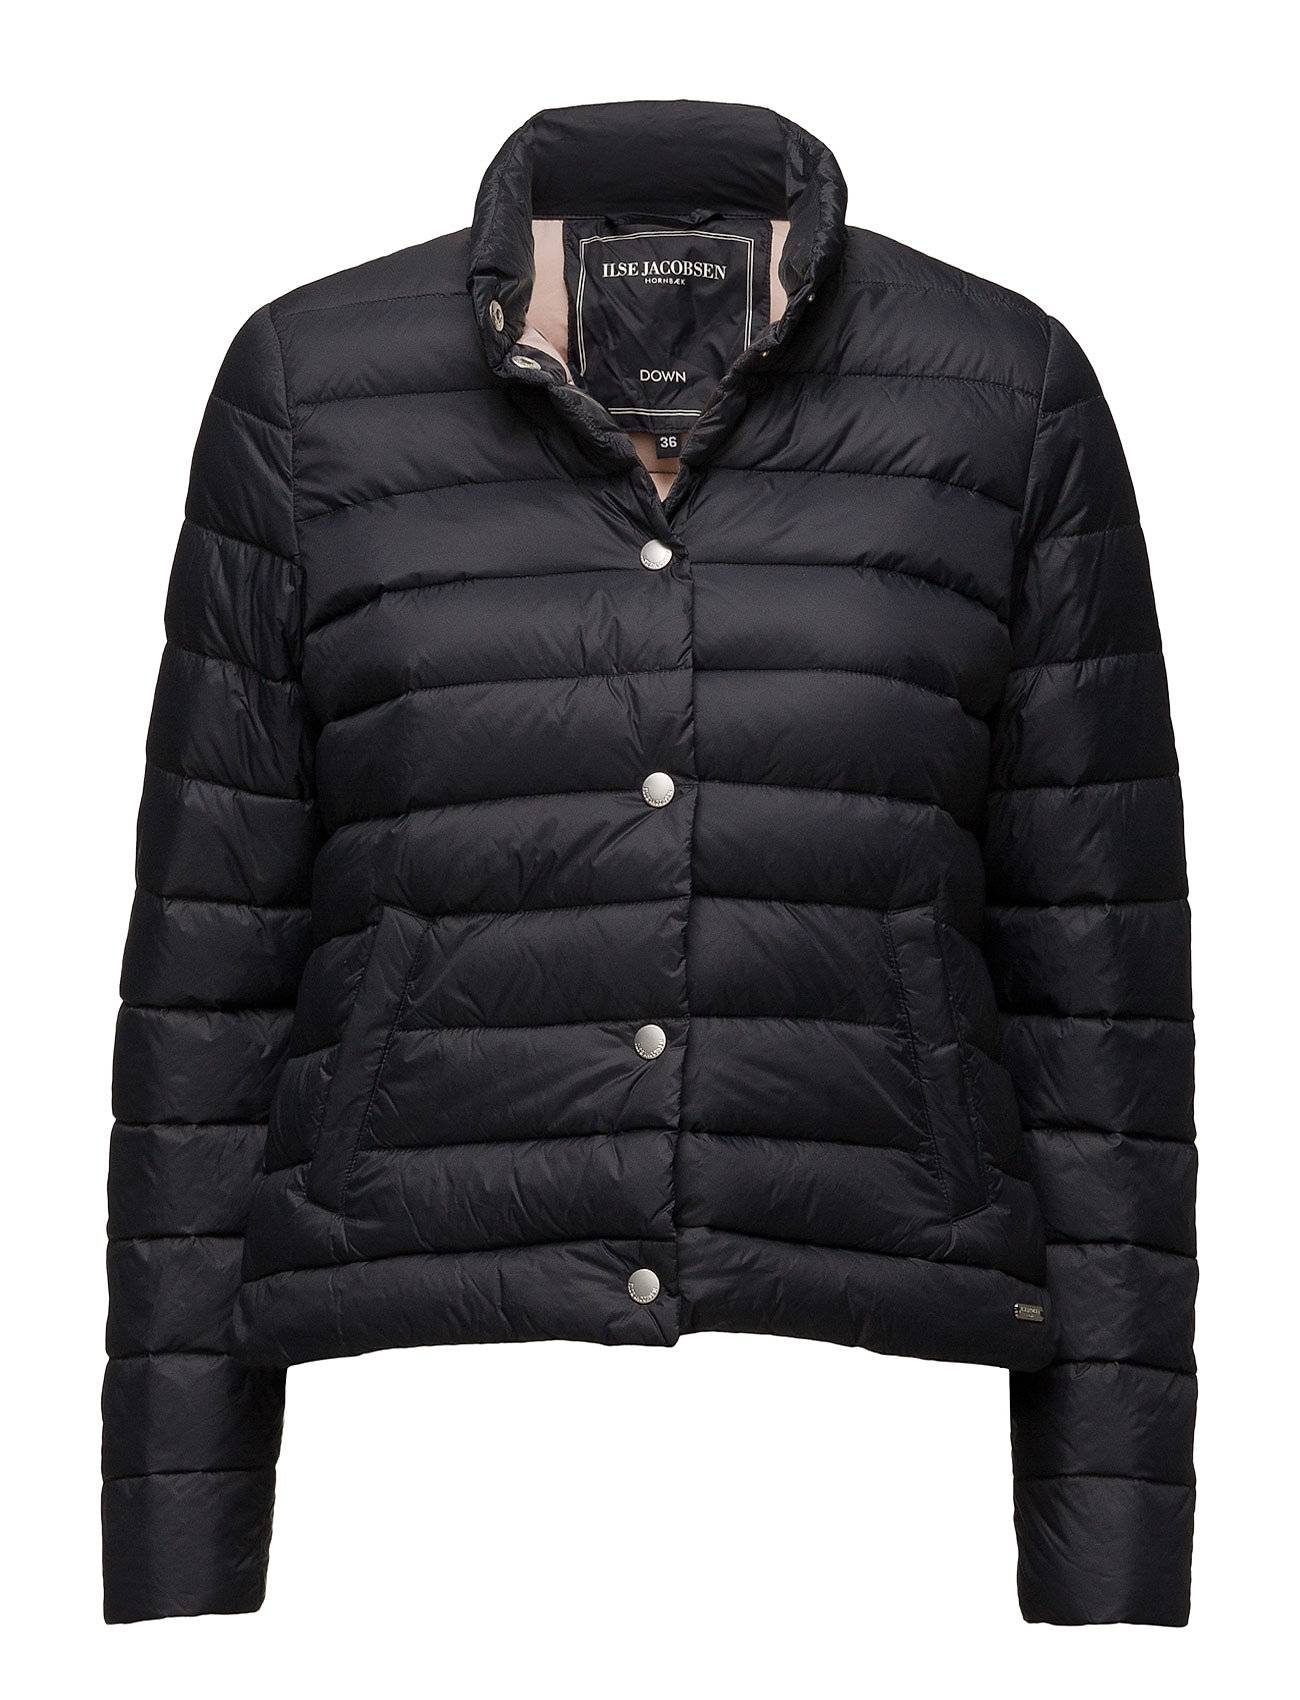 Ilse Jacobsen Woman Light Down Jacket